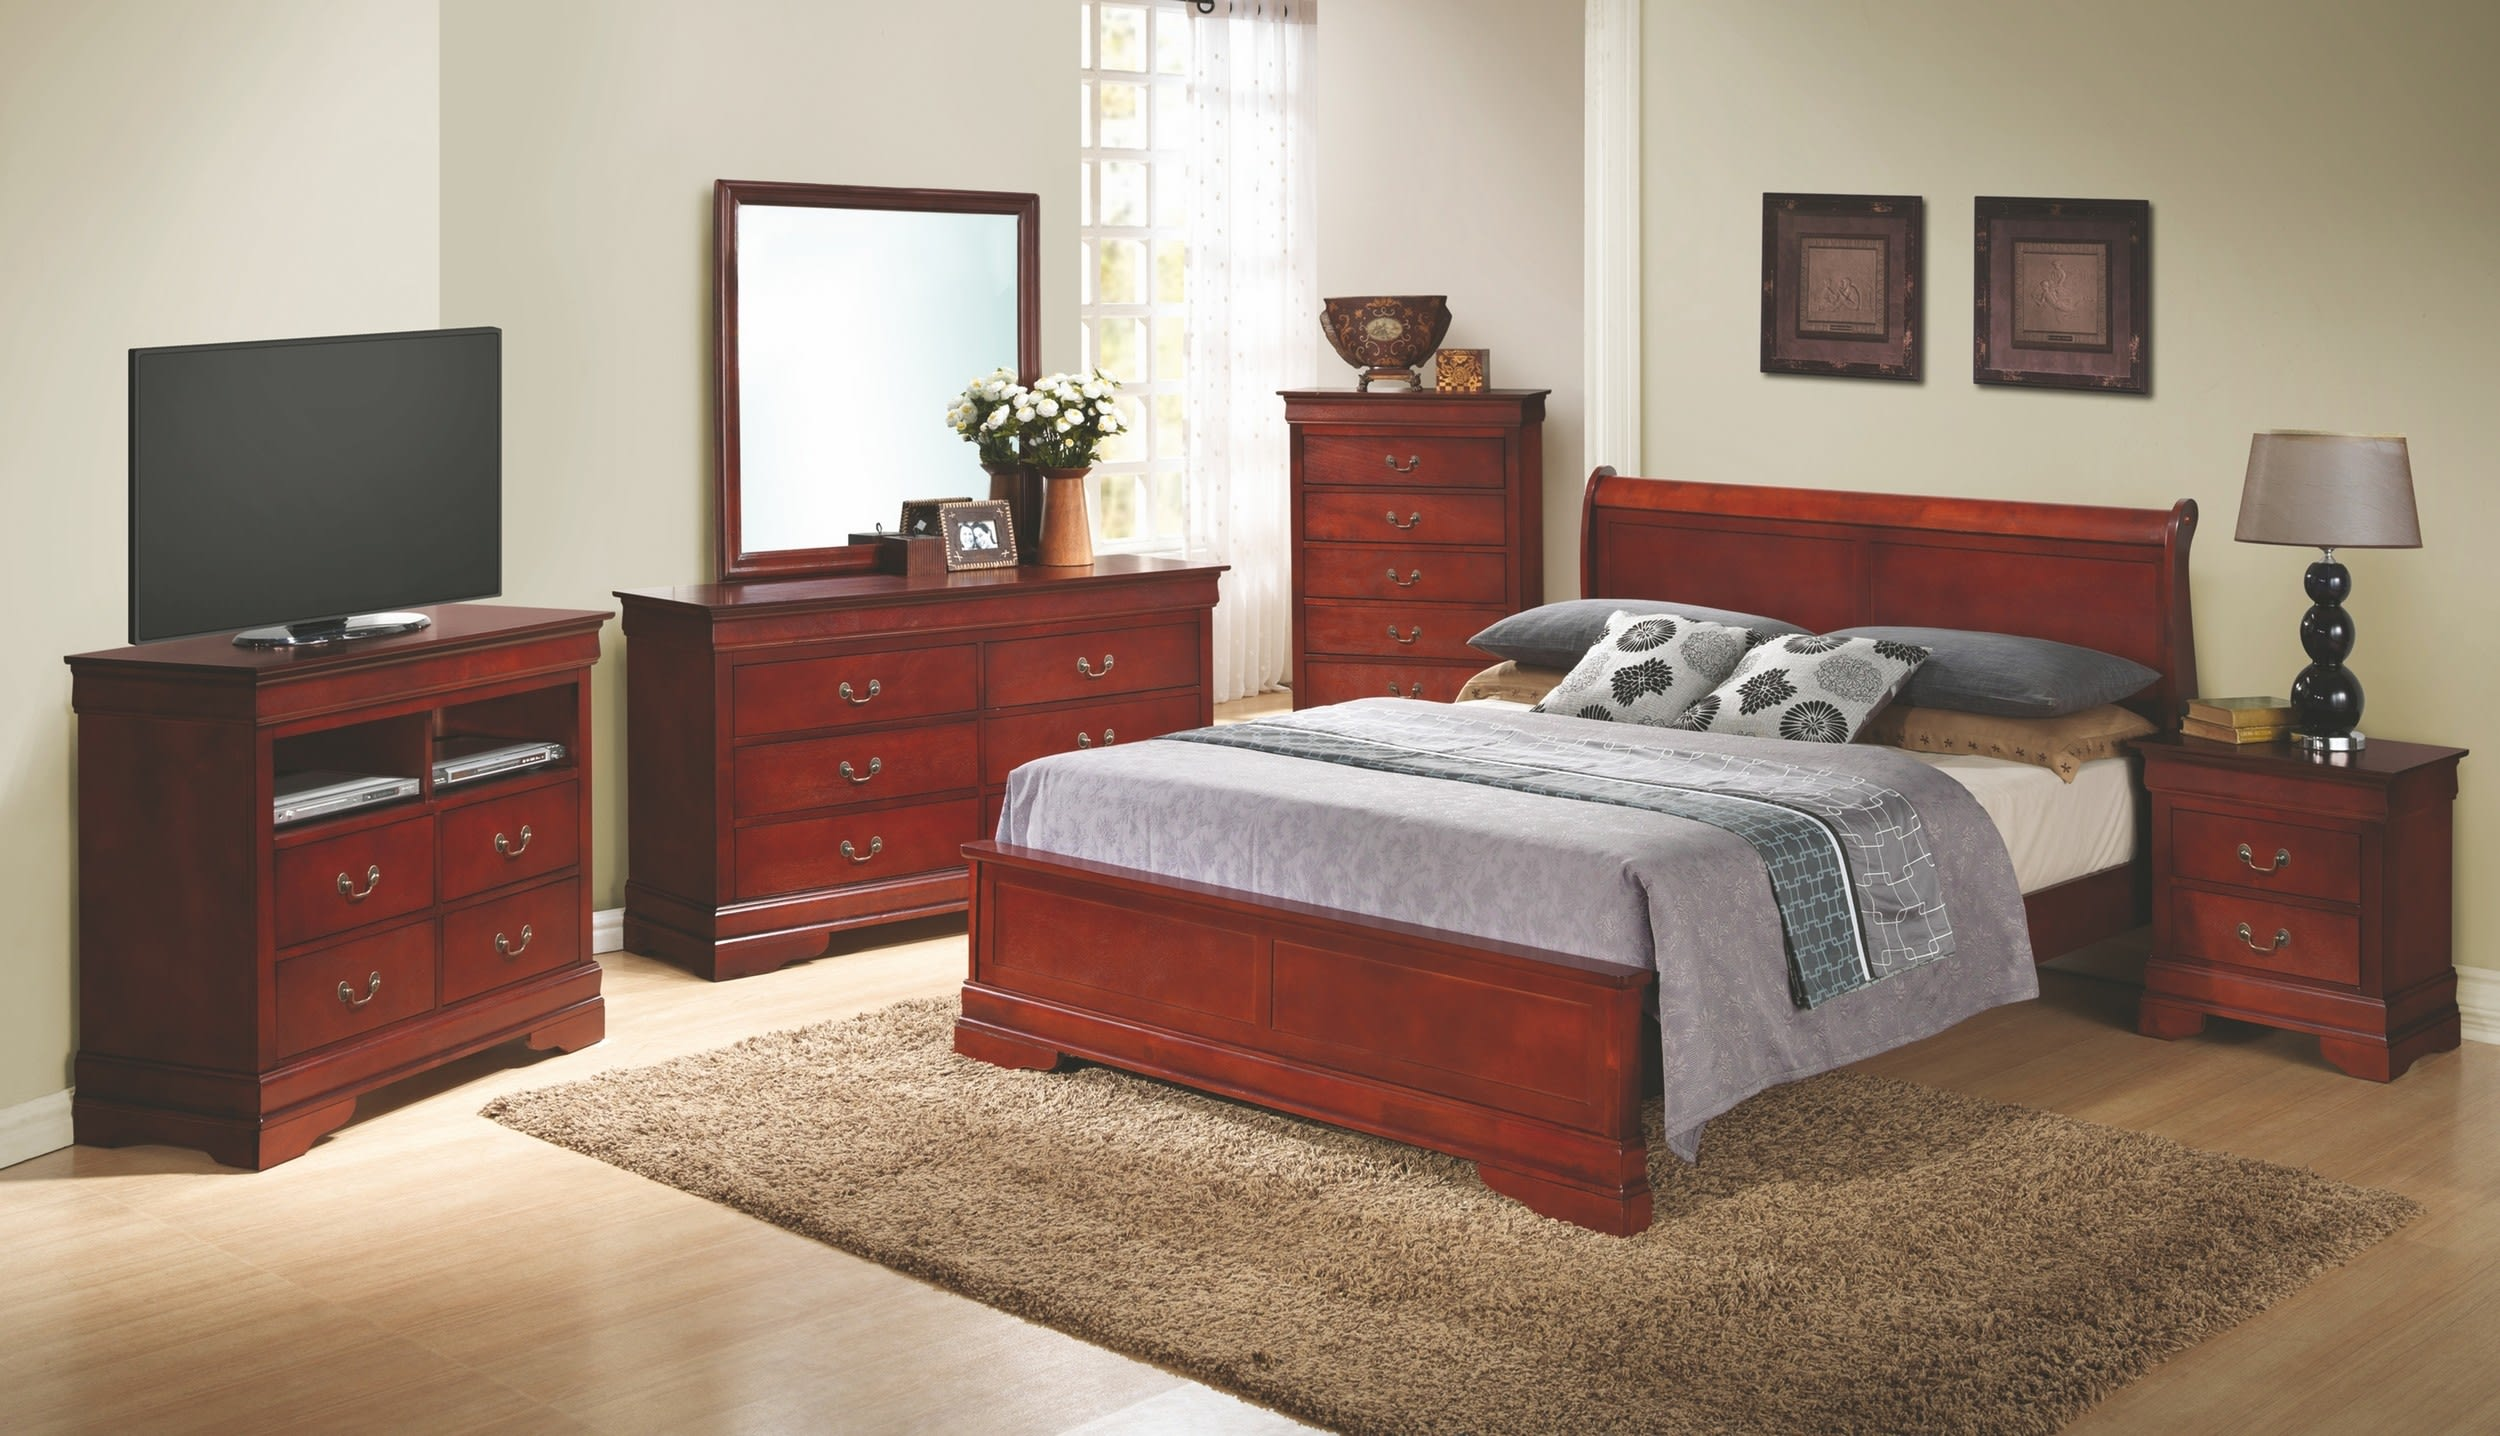 Glory Cherry Queen 6-Piece Bedroom Set with Sleigh Headboard & Reviews -  Goedekers.com